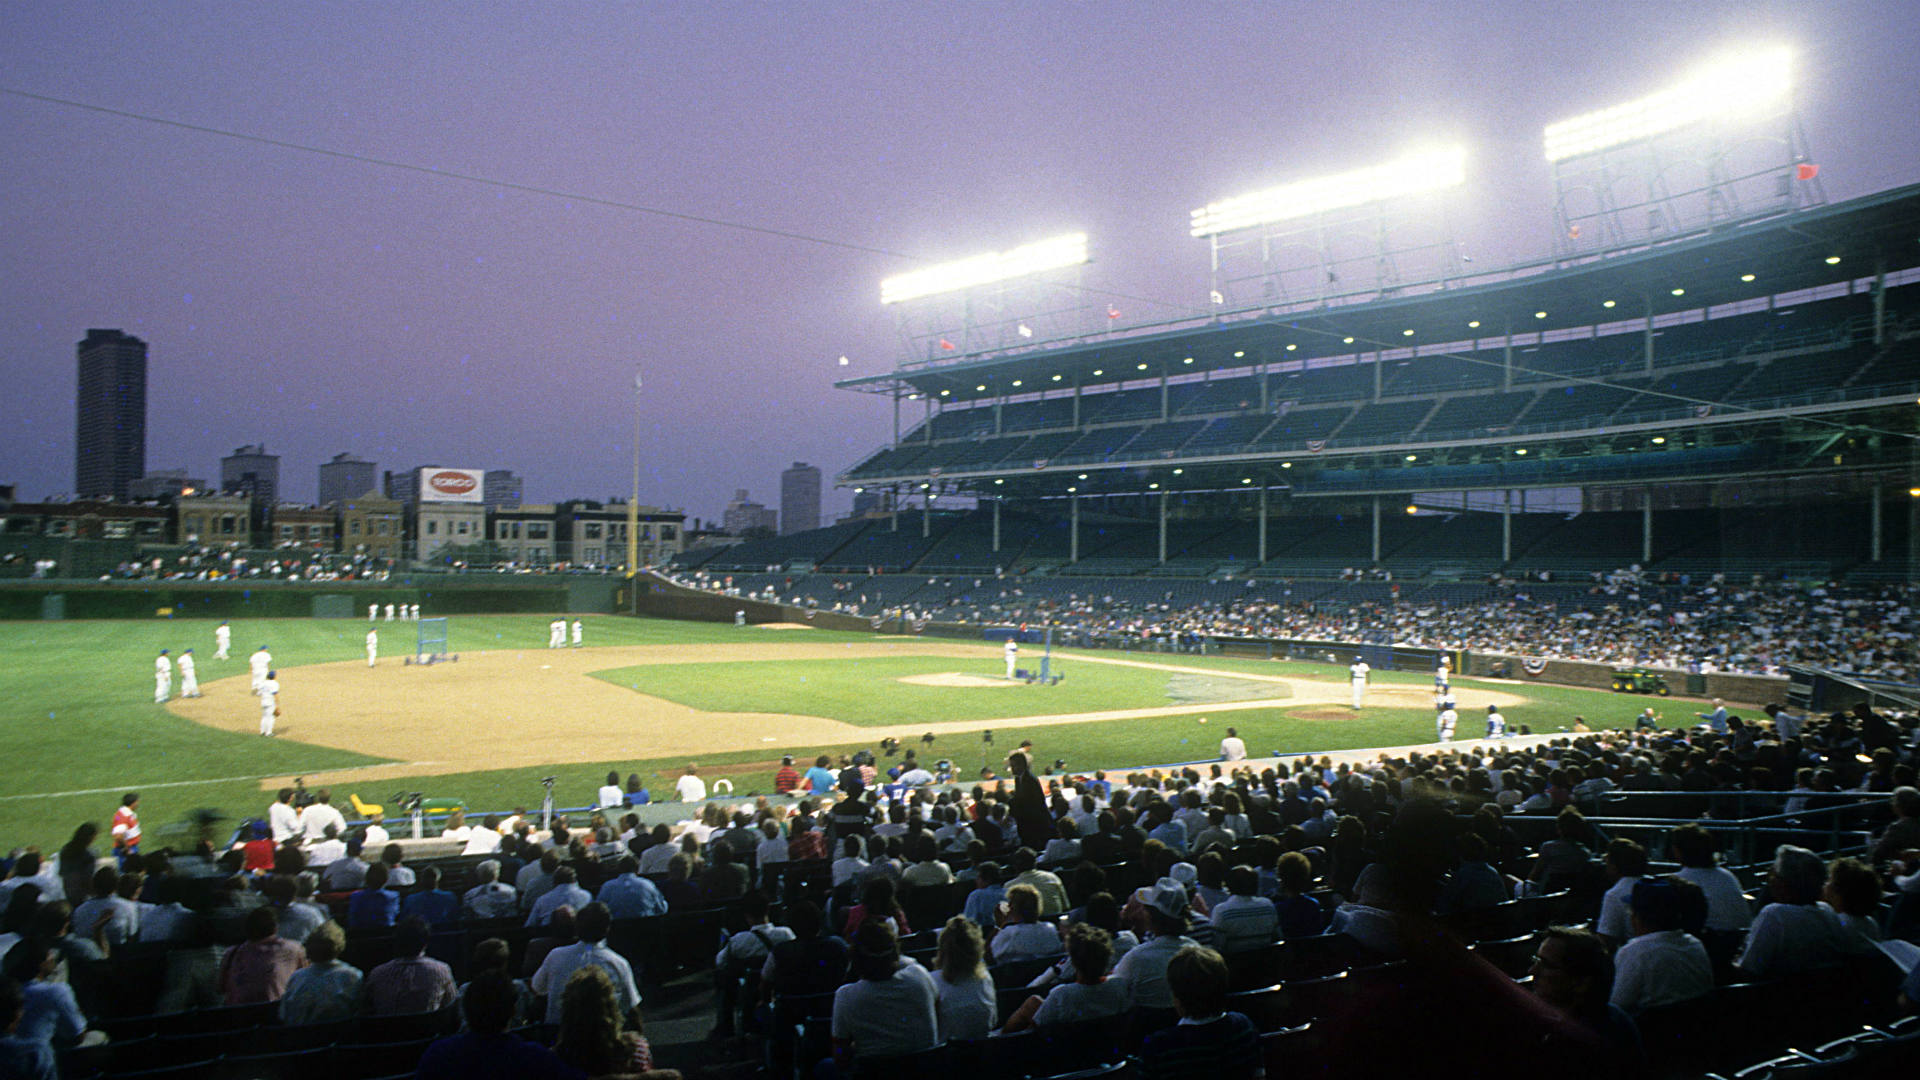 8/8/88: Remembering the first night game at Wrigley Field